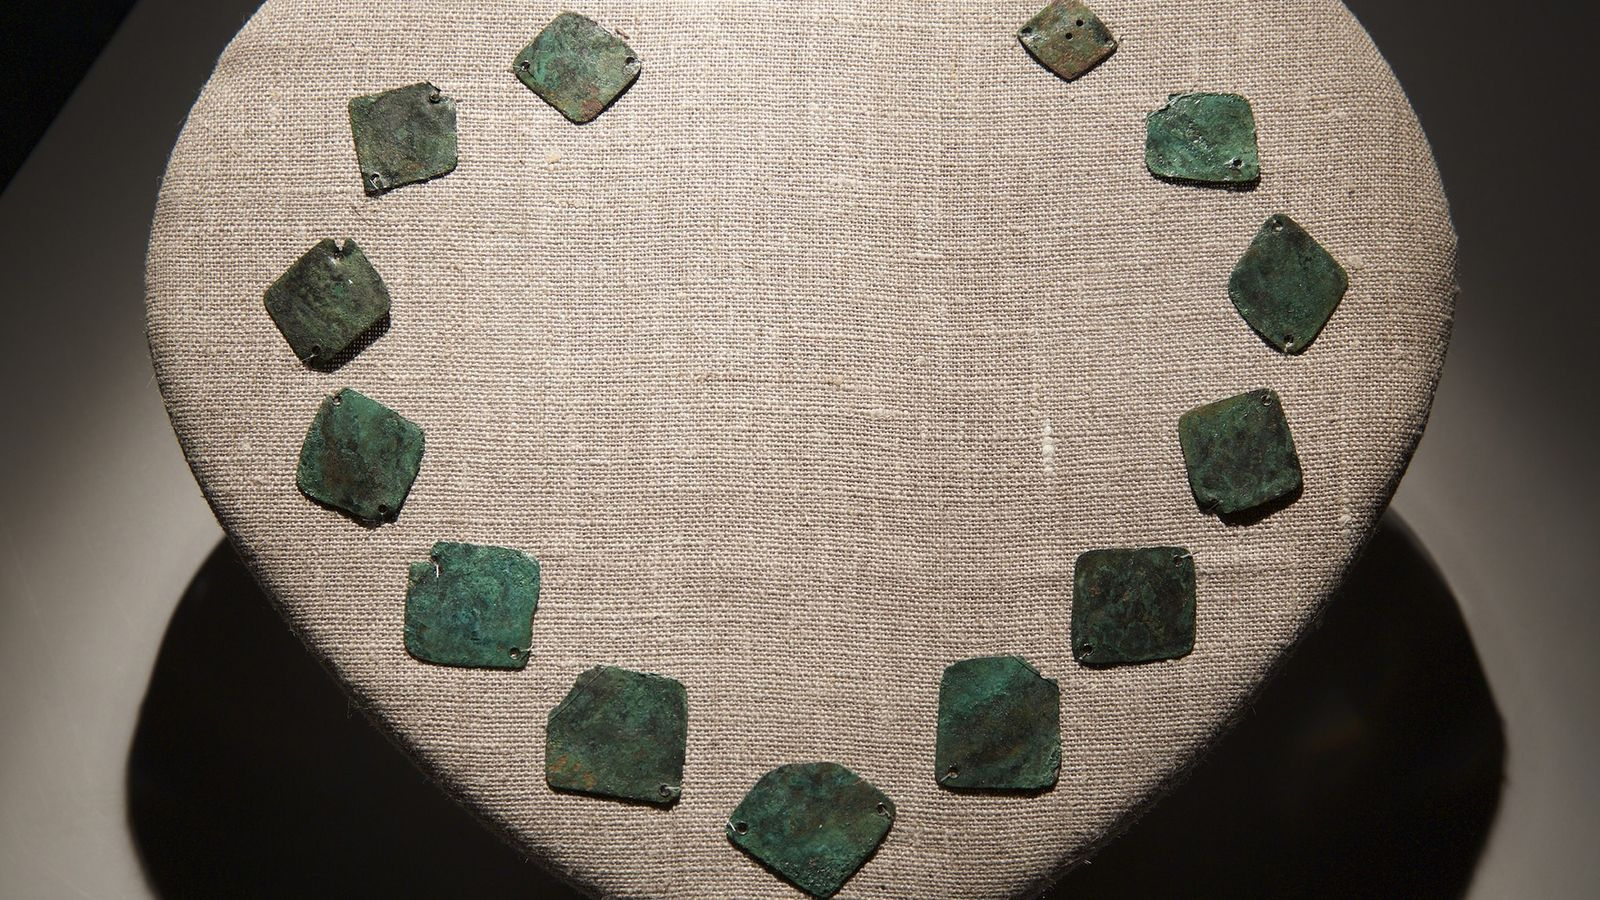 Copper plates made in Europe were once tied together into a necklace for Native Americans. The ...